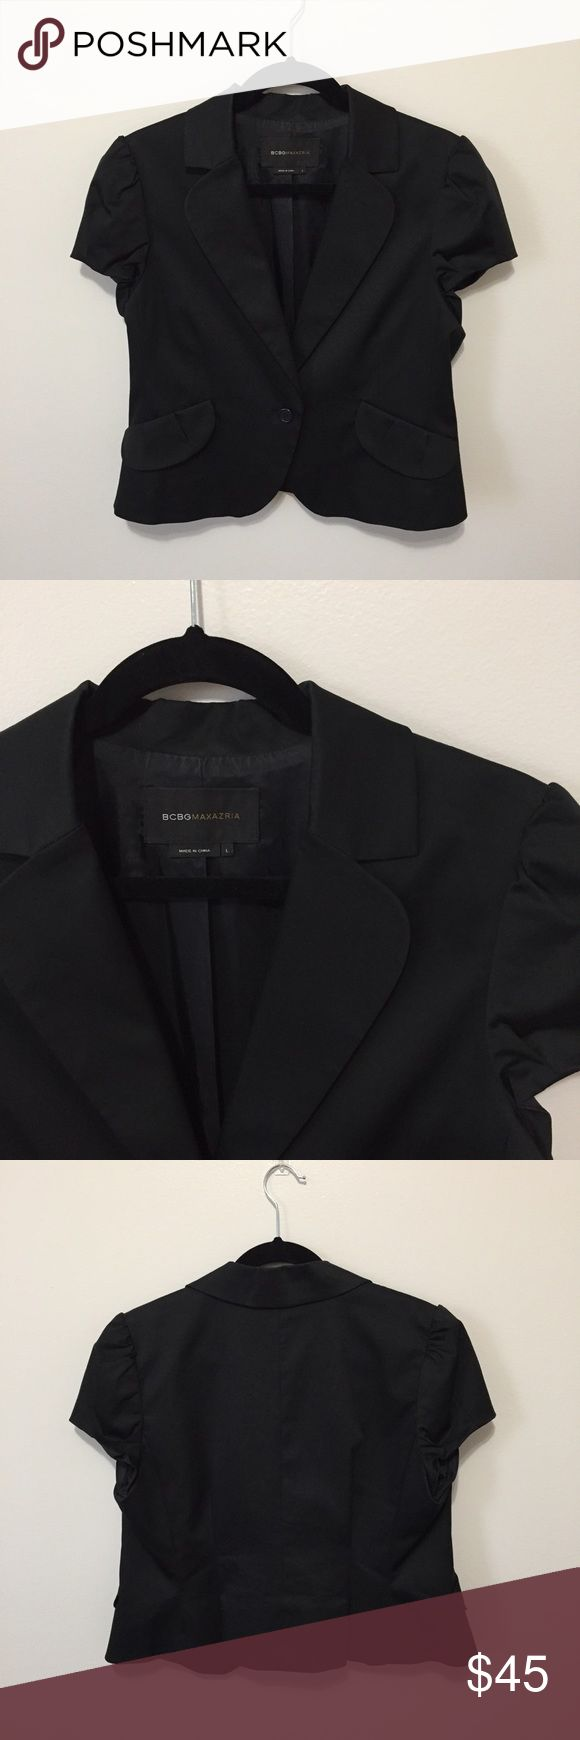 BCBGMaxazria Cap Sleeve Blazer Retail $198. Beautiful black cap sleeve blazer. One button closure. Te faux pockets at front. Lapel with notch. Vented back. Fully lined.  Measurements according to brand: bust 40, waist 32, hips 42.5 BCBGMaxAzria Jackets & Coats